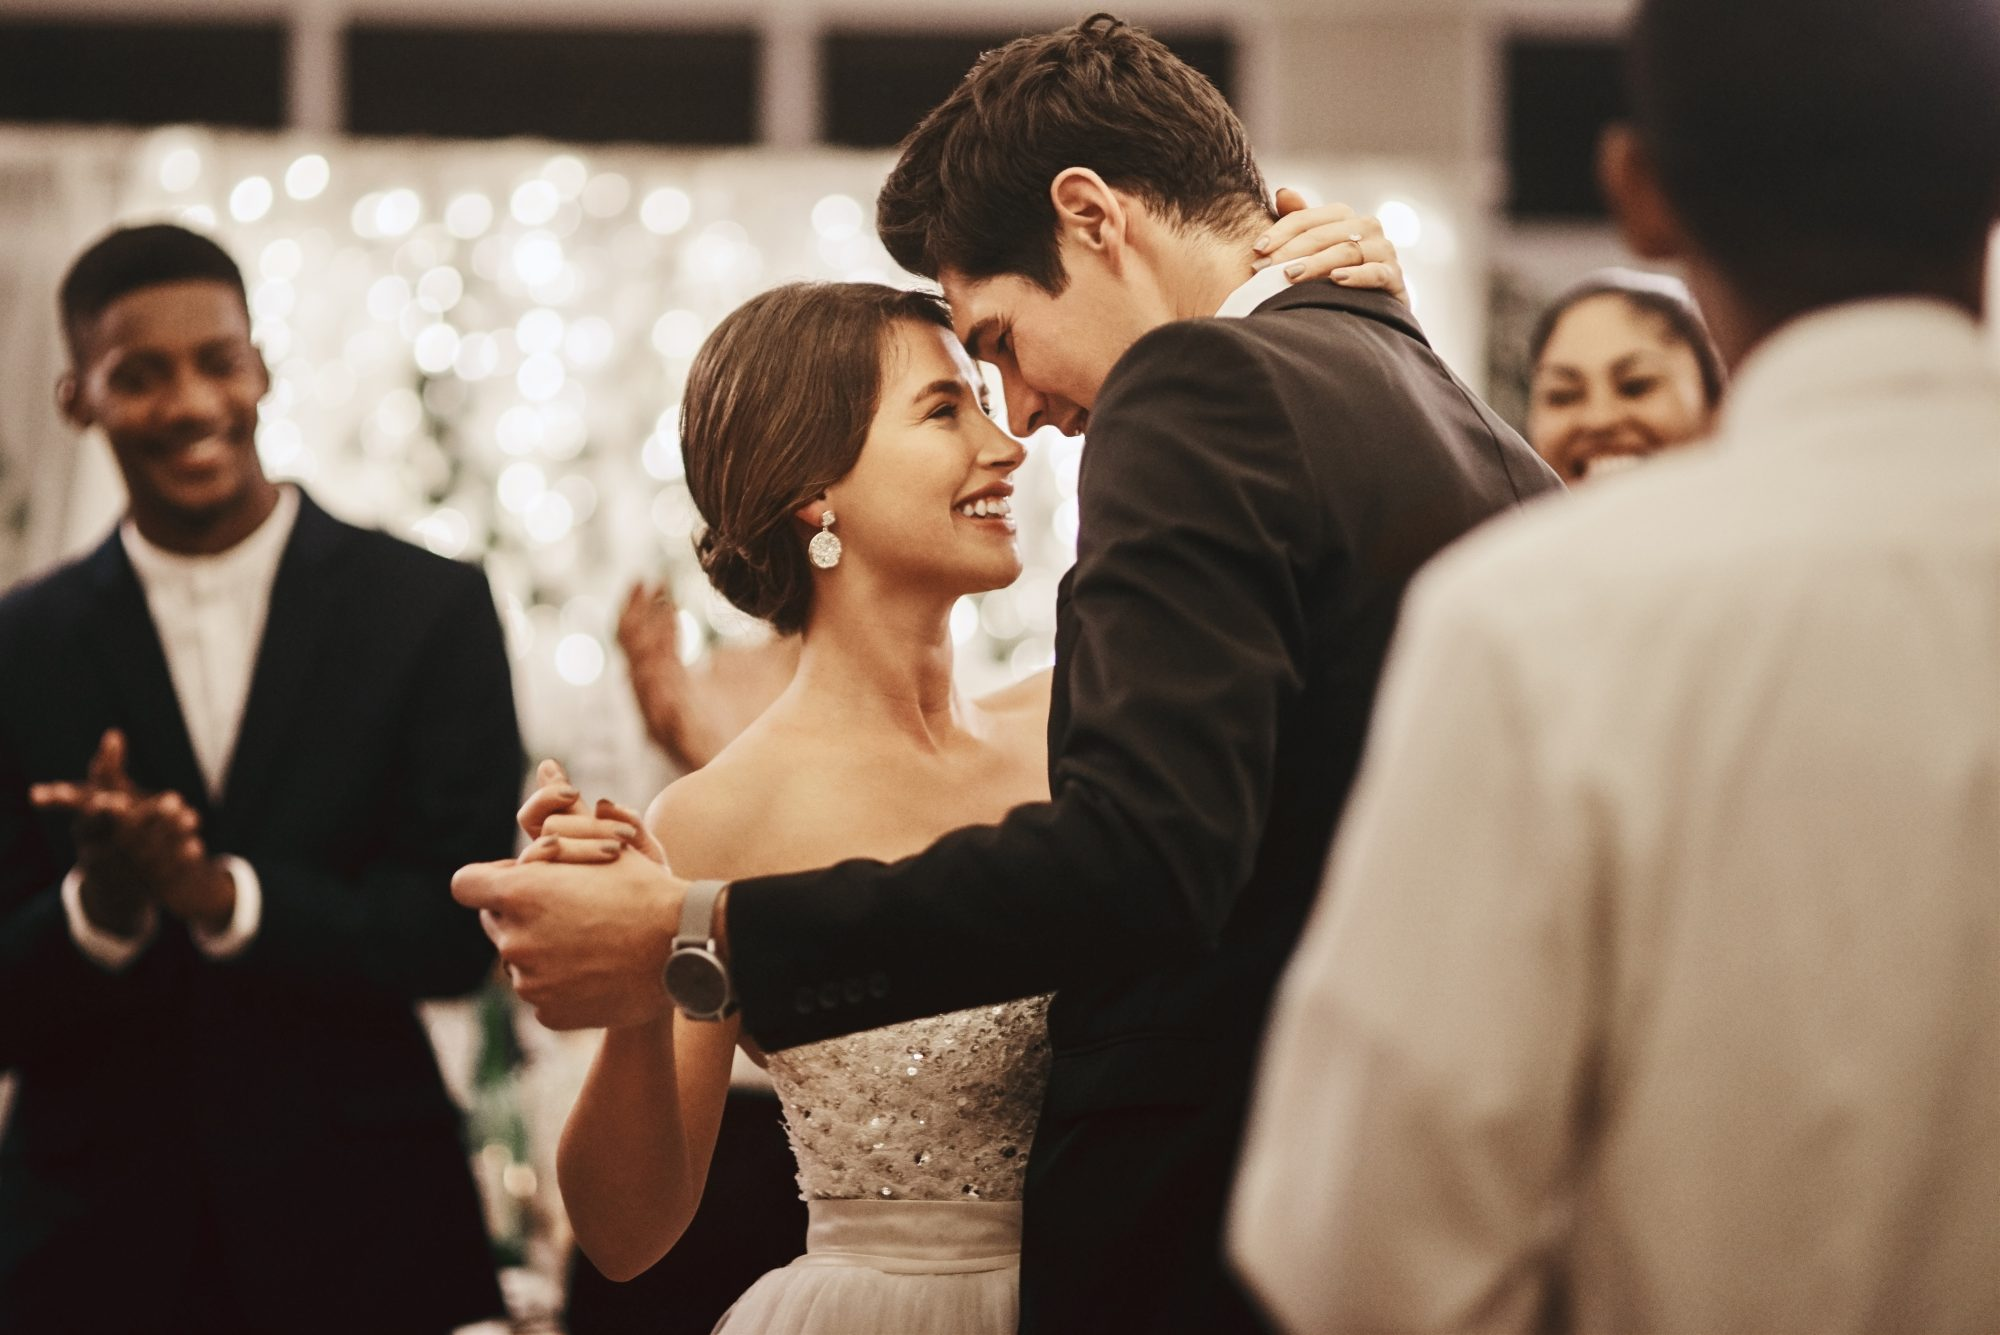 Wedding Bride and Groom First Dance